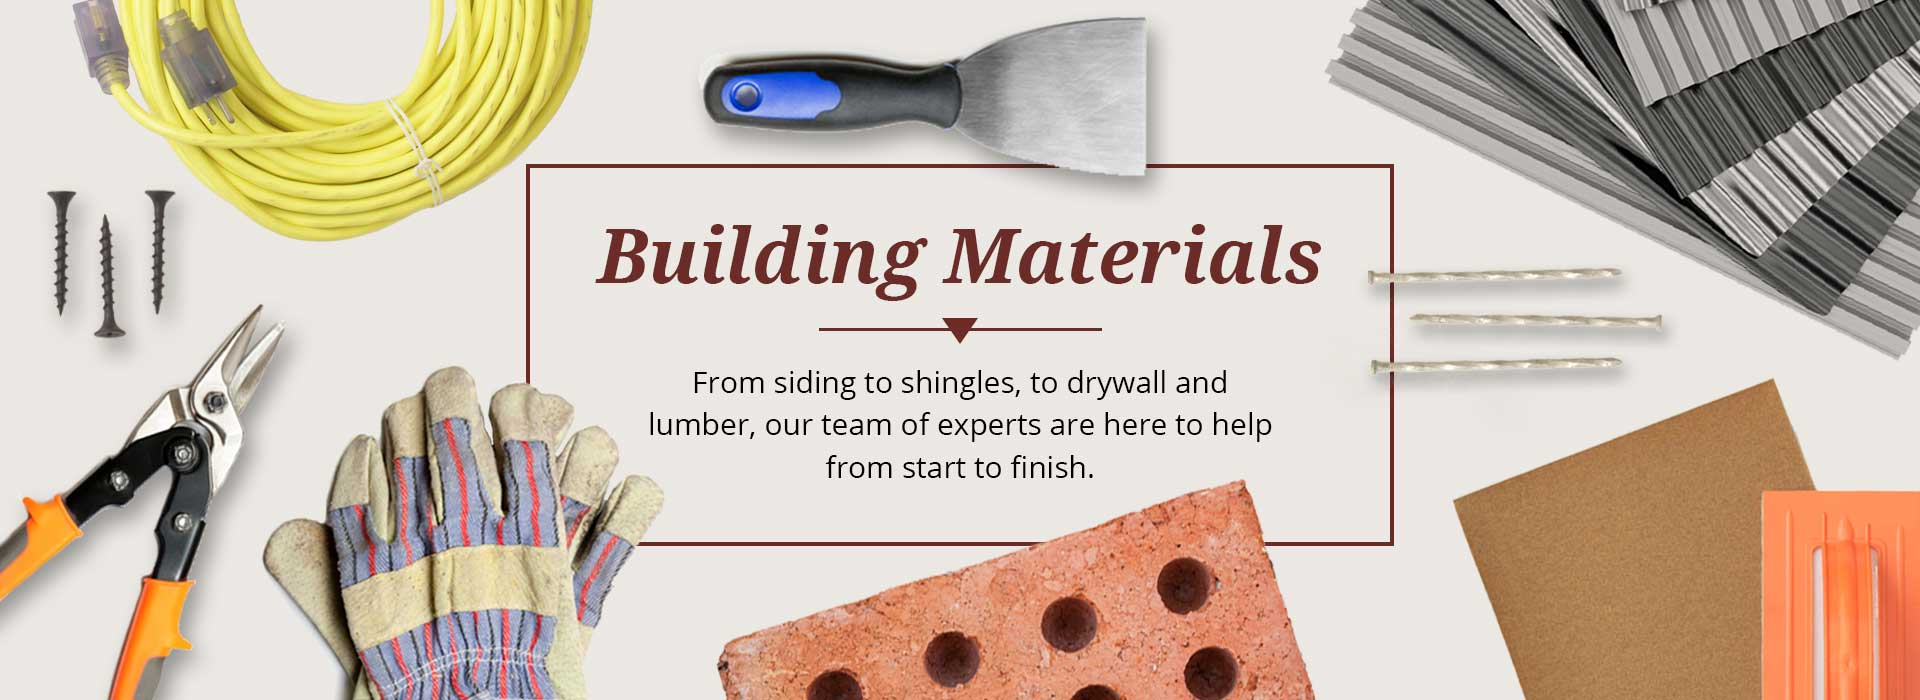 Building Materials And Construction Services : Building materials yantzi home design smart